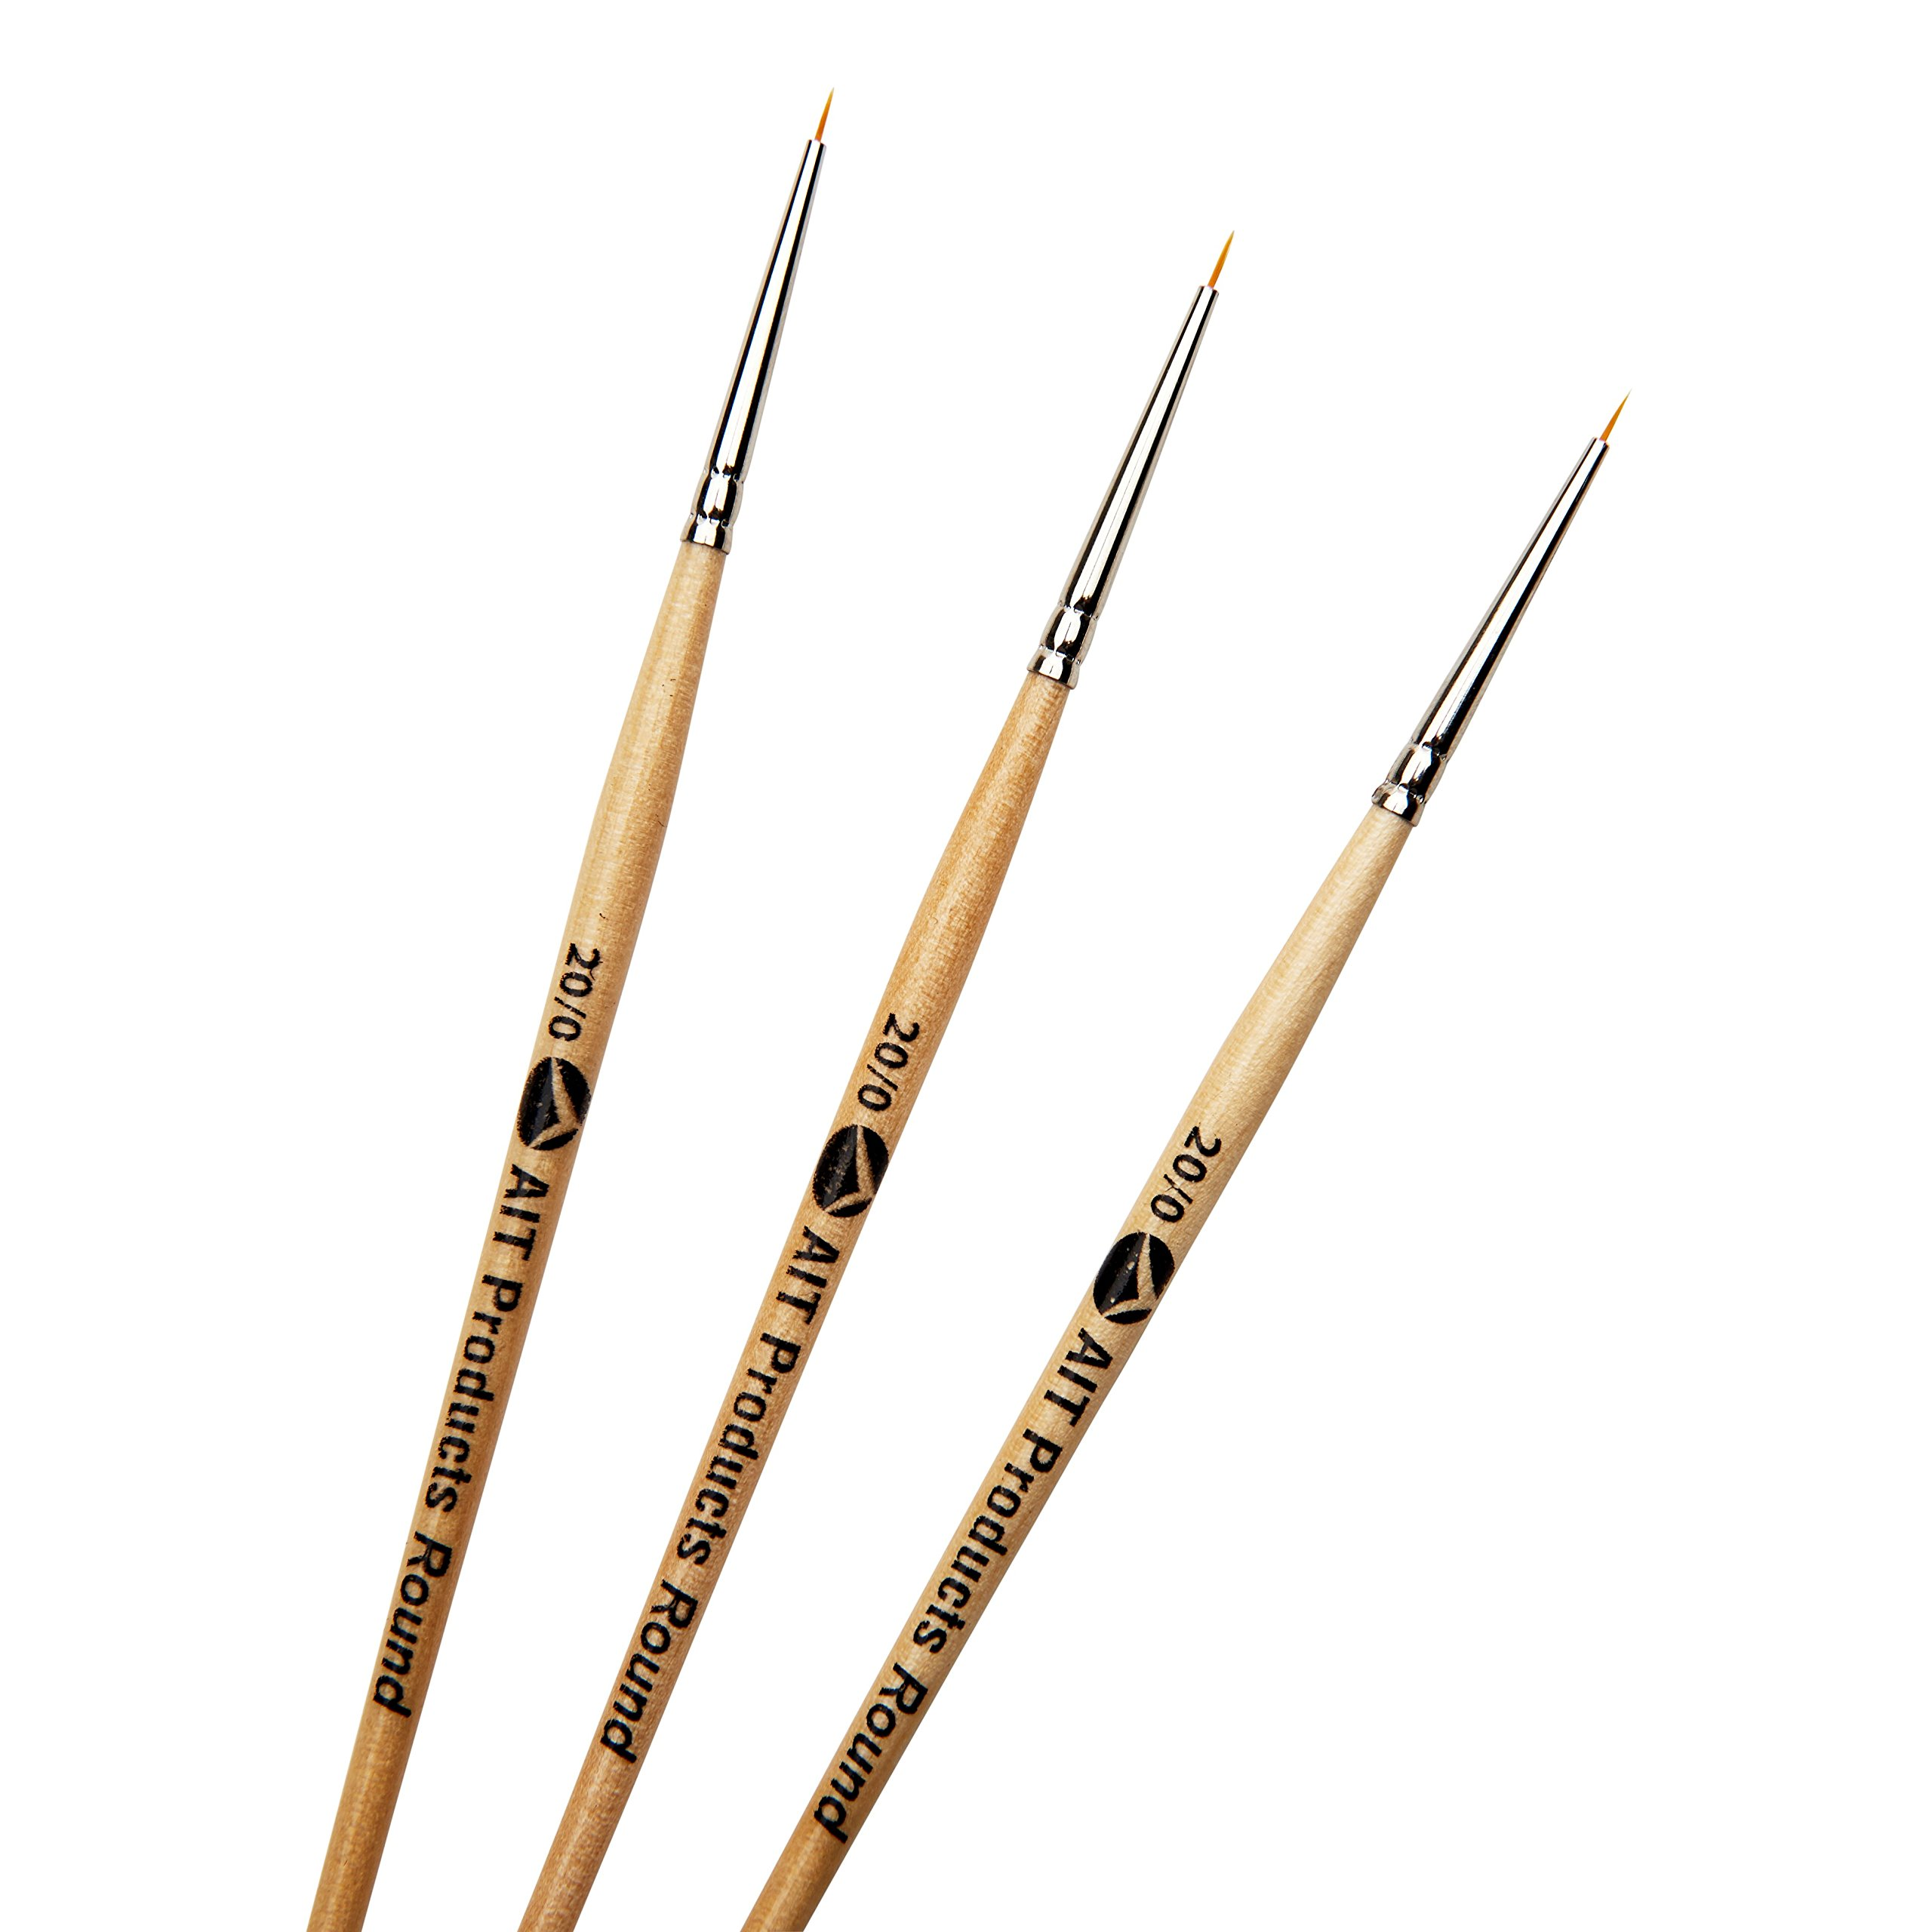 AIT Art Round Detail Paint Brushes, Size 20/0, Pack of 3, Handmade in USA for Trusted Performance Painting Small Details with Oil, Acrylic, and Watercolors